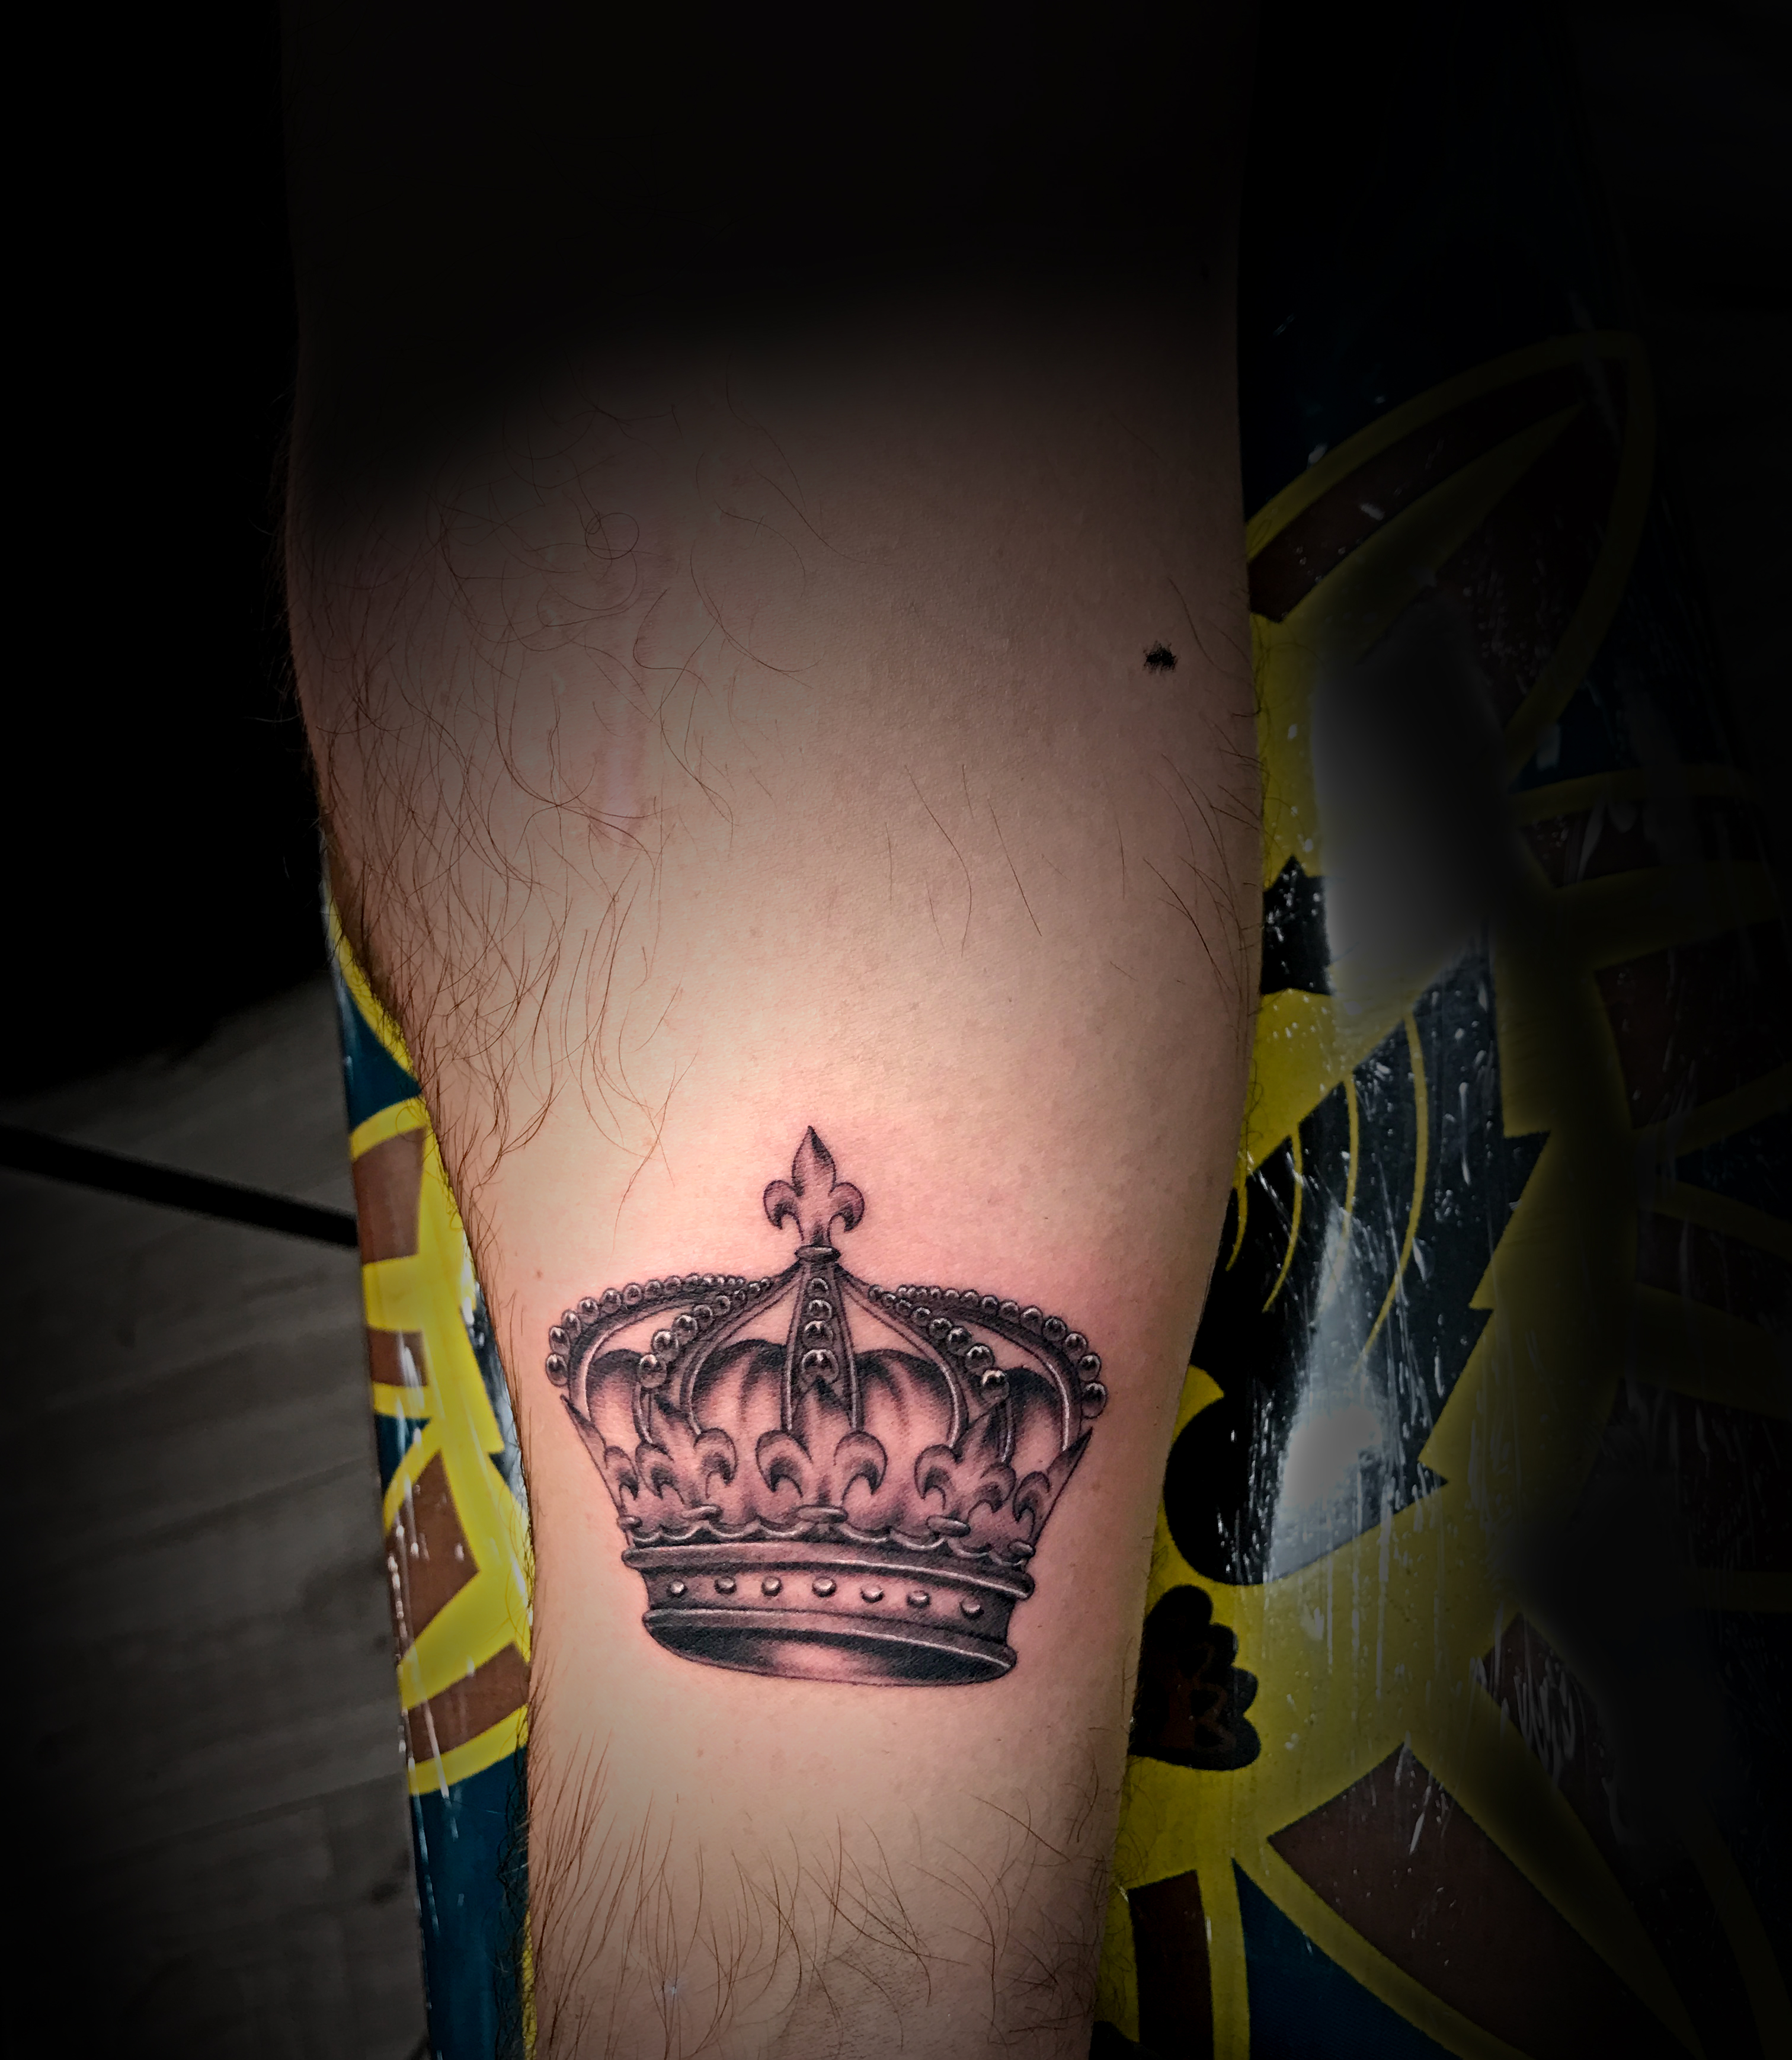 Q Tattoo in Huntington Beach - Sara Delara - the crown